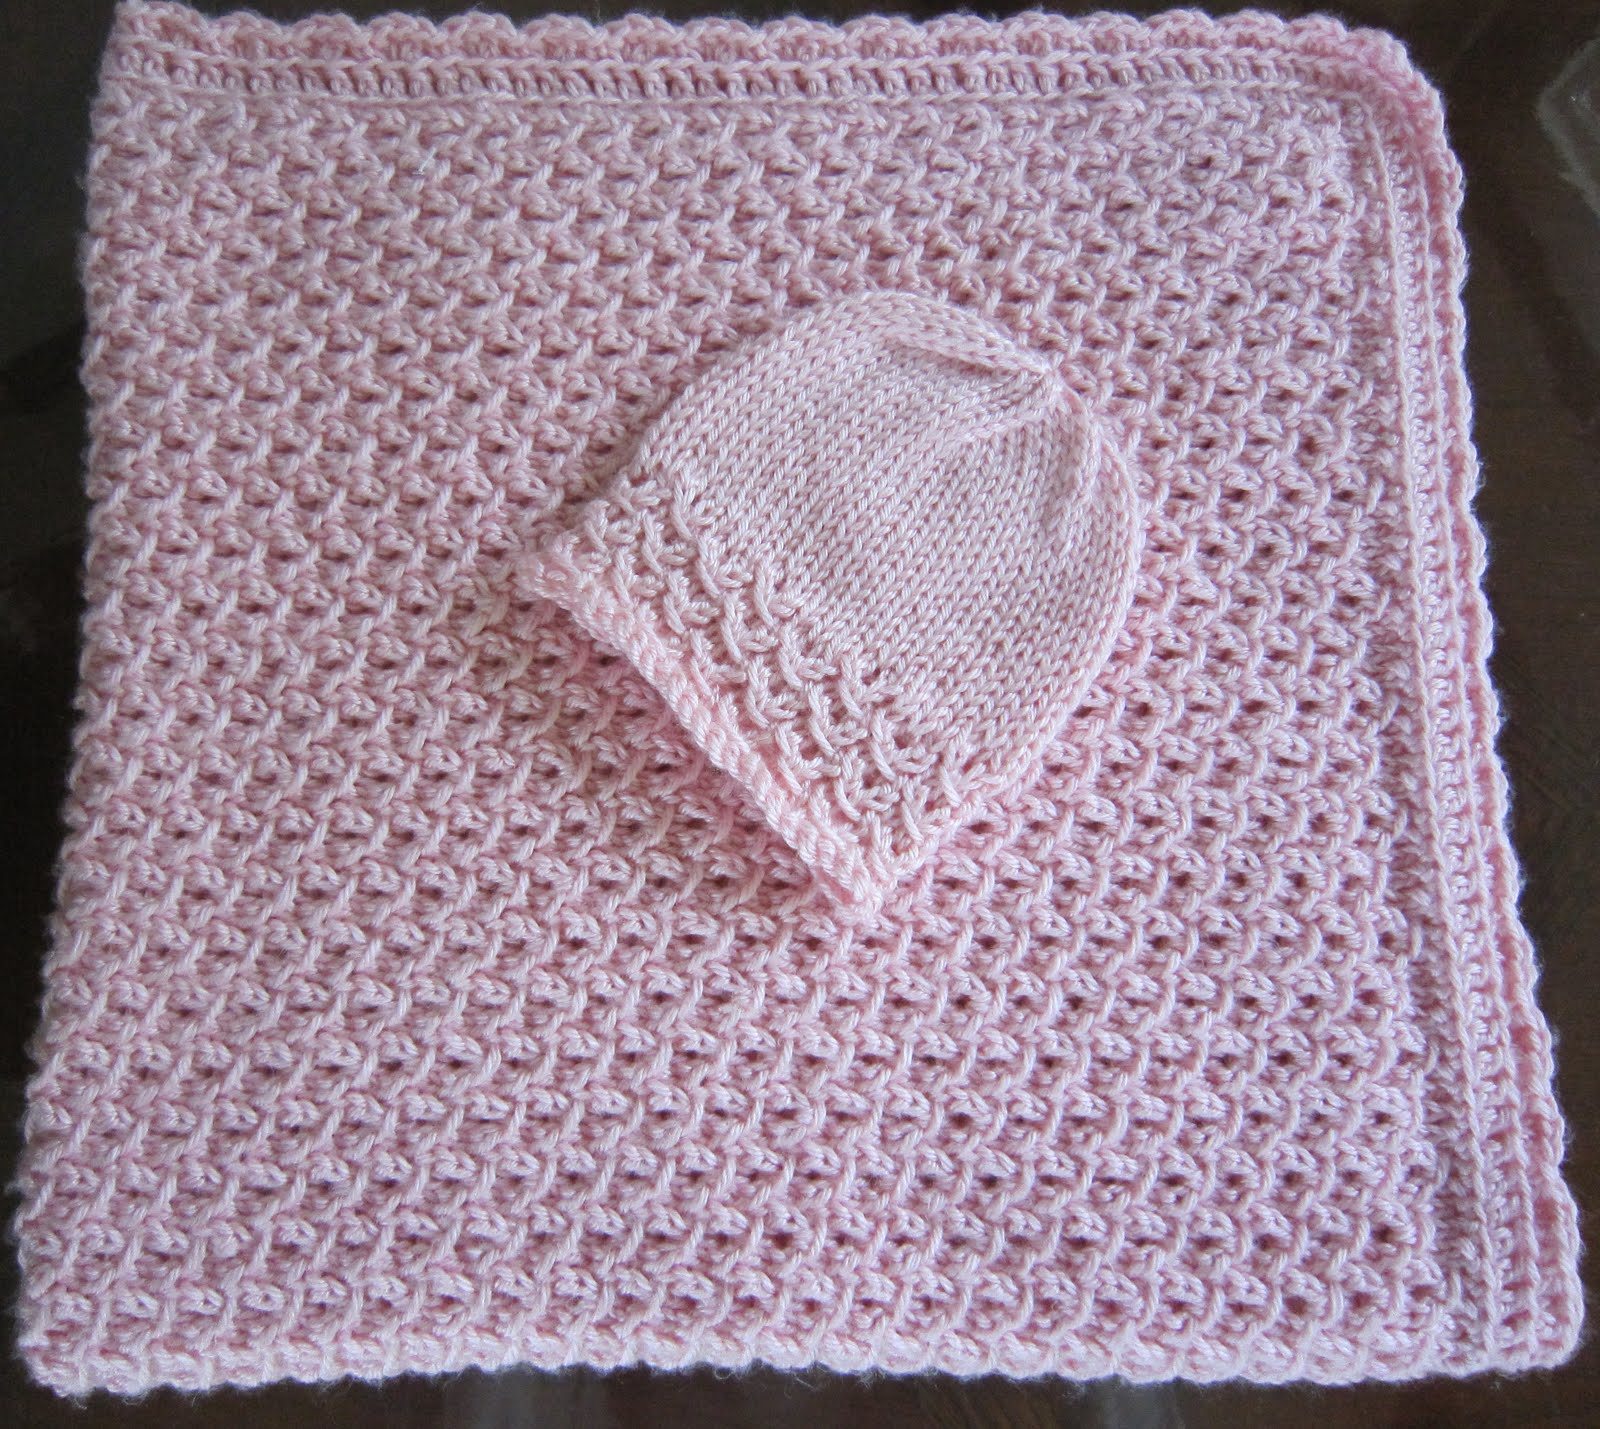 Free Knitting Patterns For Newborn Baby Blankets : Sea Trail Grandmas: Free Knit Pattern Newborn Hat and ...